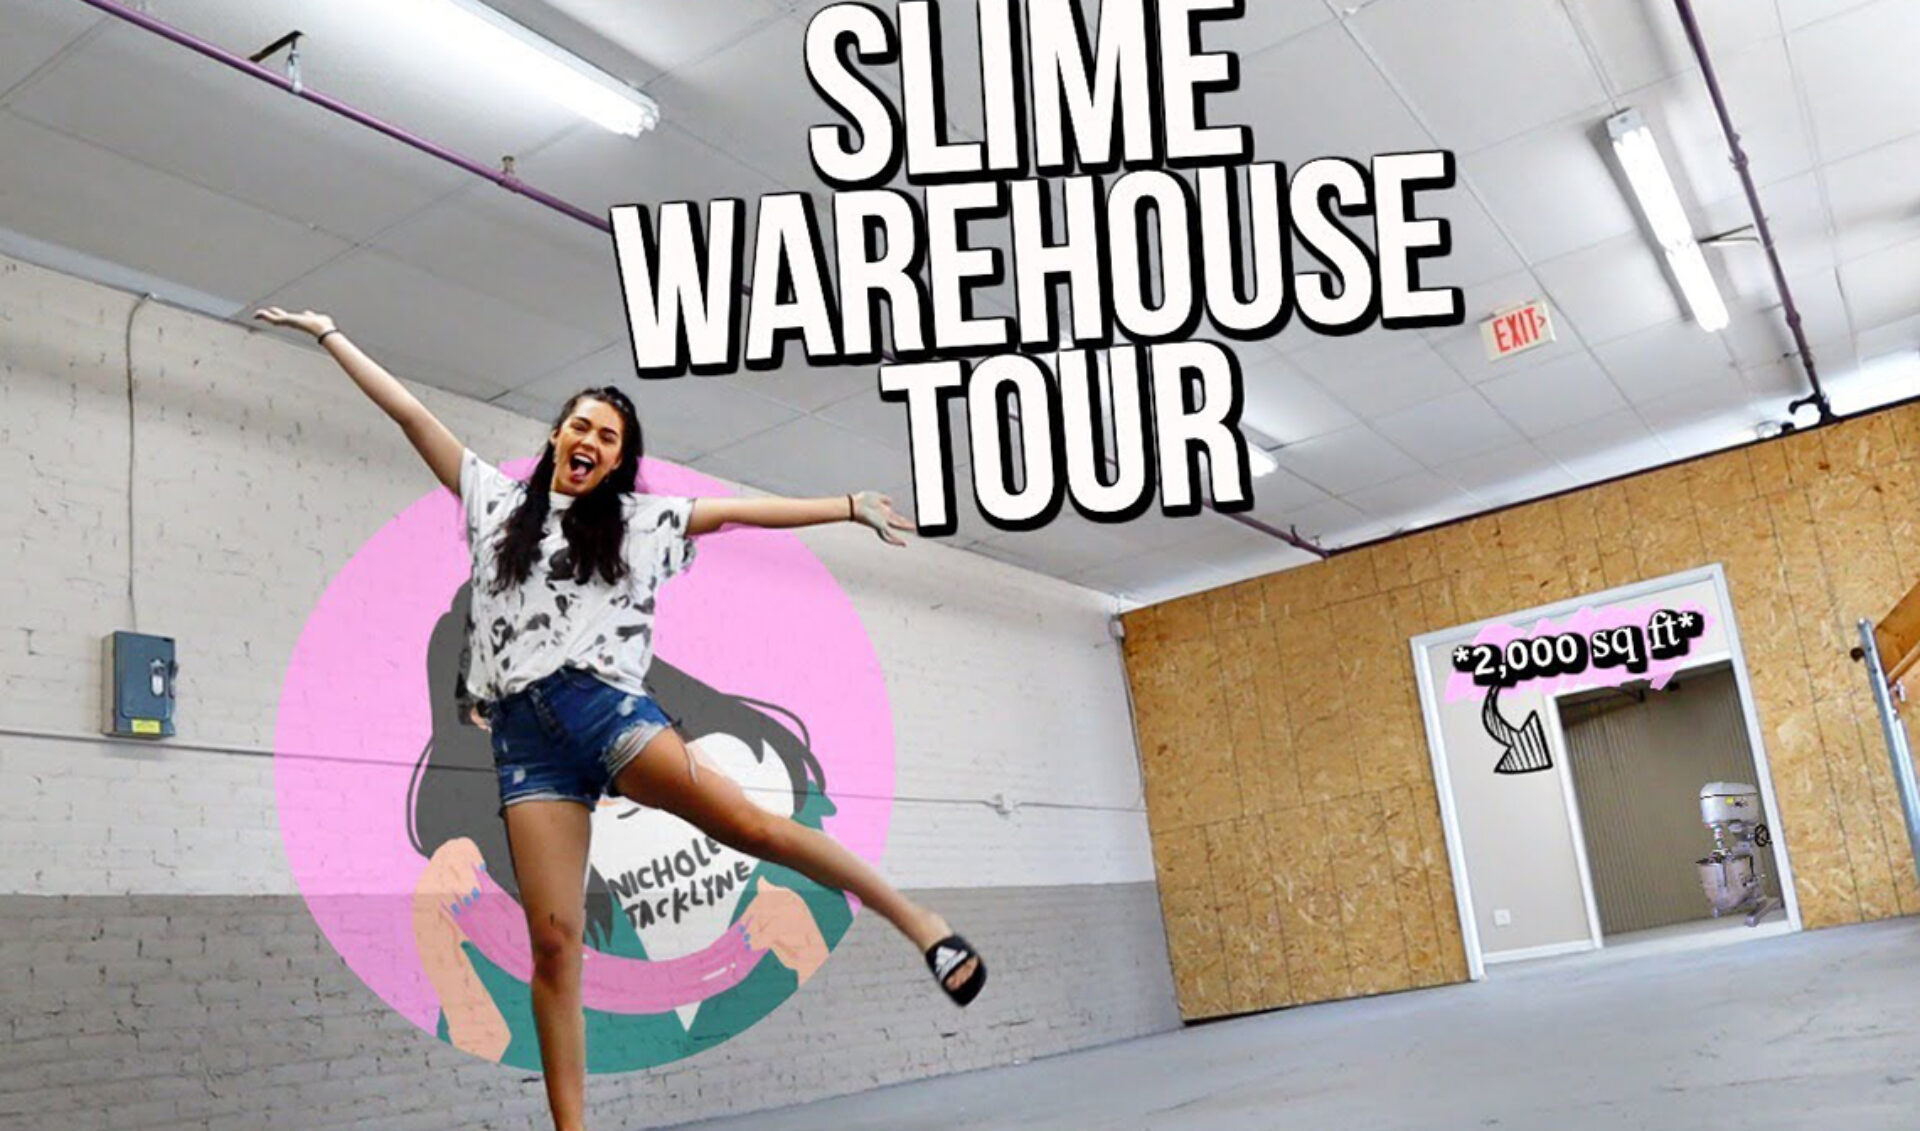 YouTube Millionaires: How Nichole Jacklyne Went From Summer Job To Slime Empire